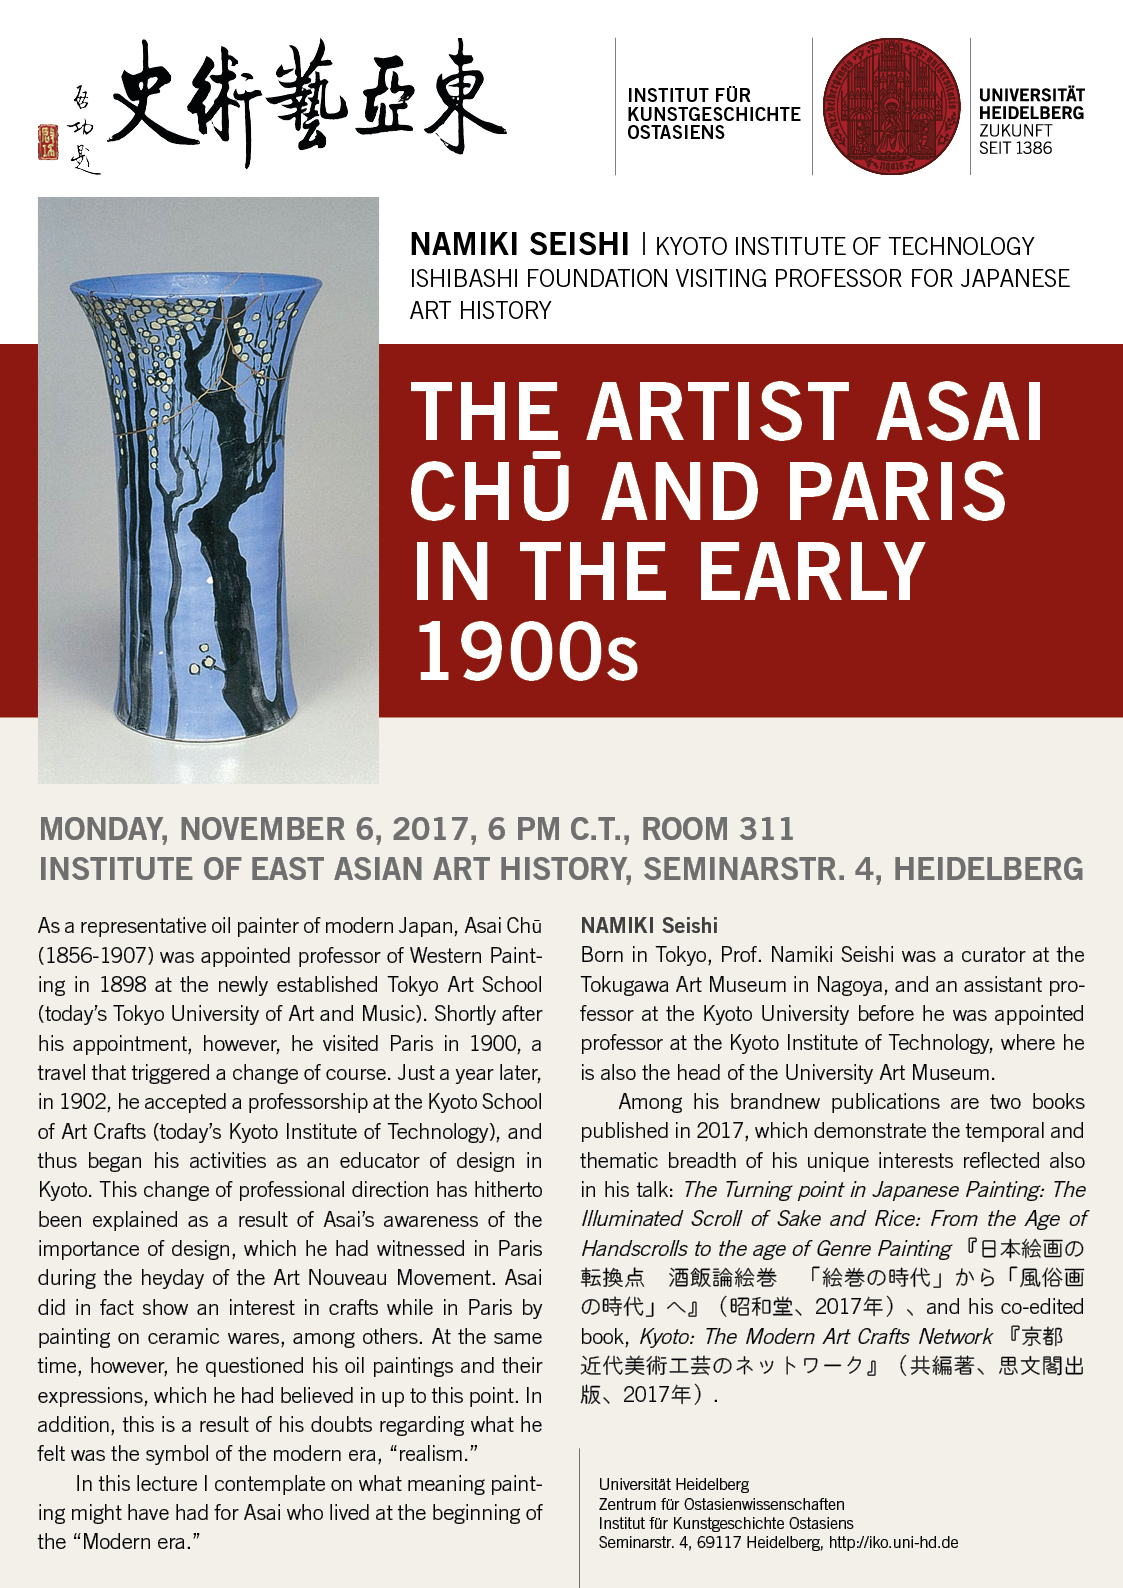 The Artist Asai Chû and Paris in the Early 1900s